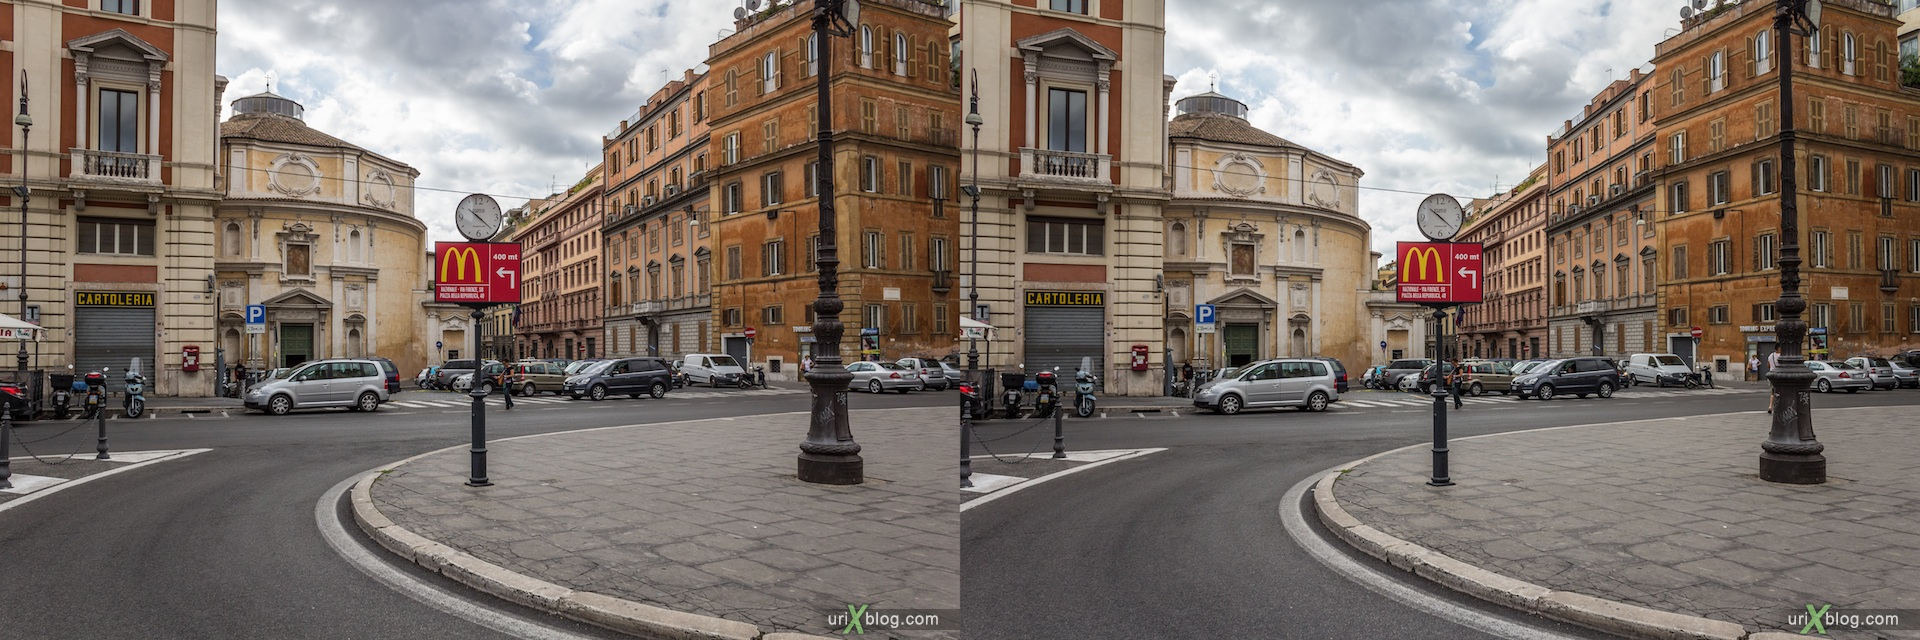 2012, Piazza San Bernardo square, McDonalds sign, San Bernardo alle Terme church, Rome, Italy, Europe, 3D, stereo pair, cross-eyed, crossview, cross view stereo pair